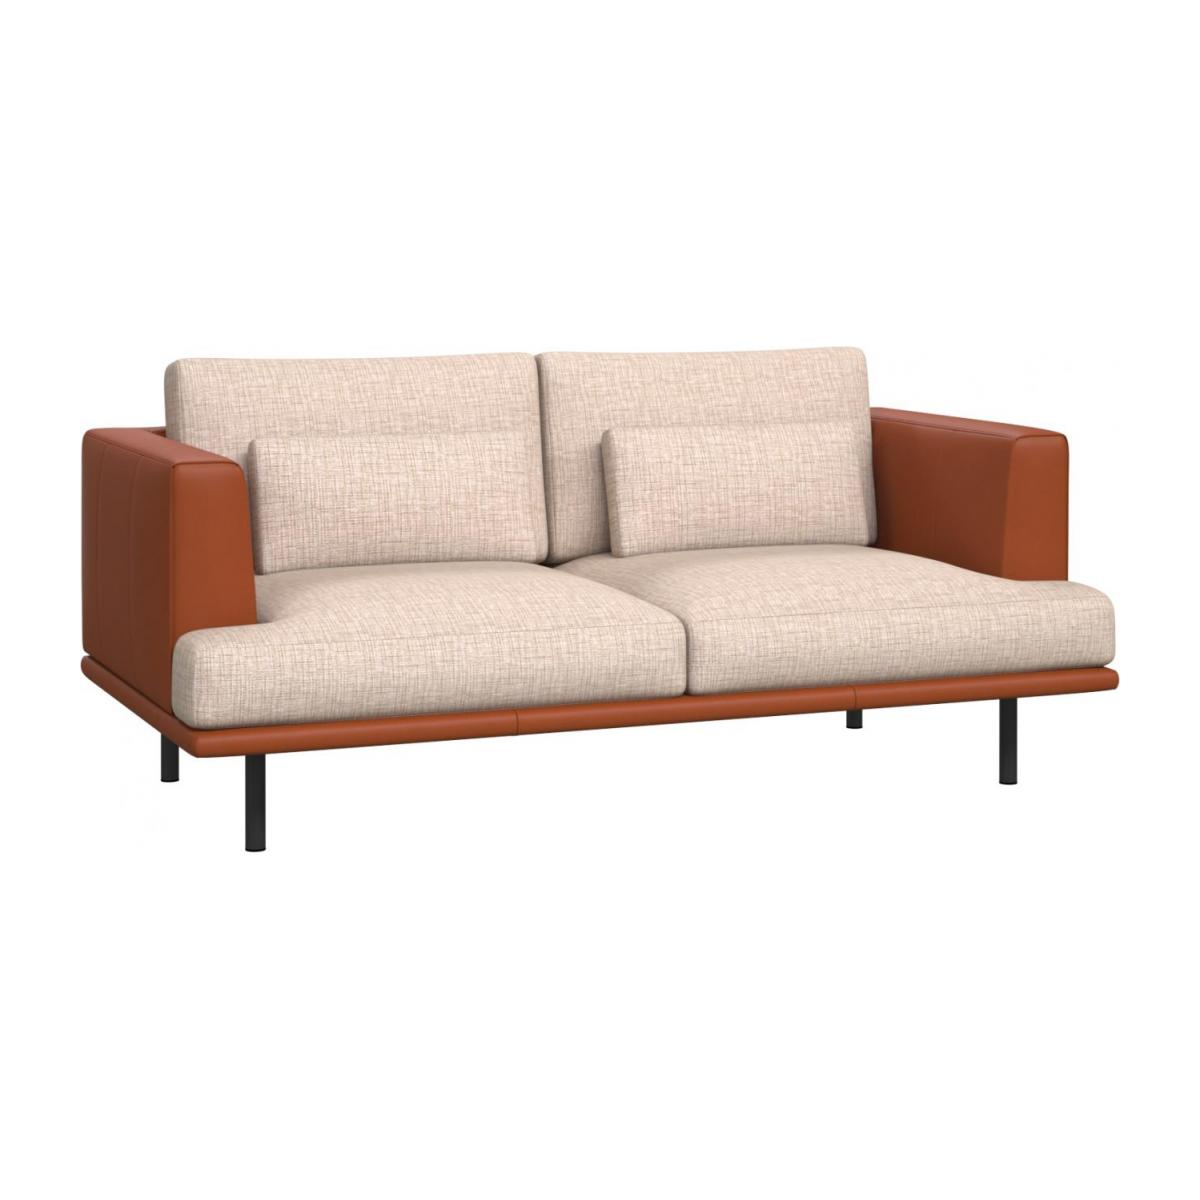 2 seater sofa in Ancio fabric, nature with base and armrests in brown leather n°1